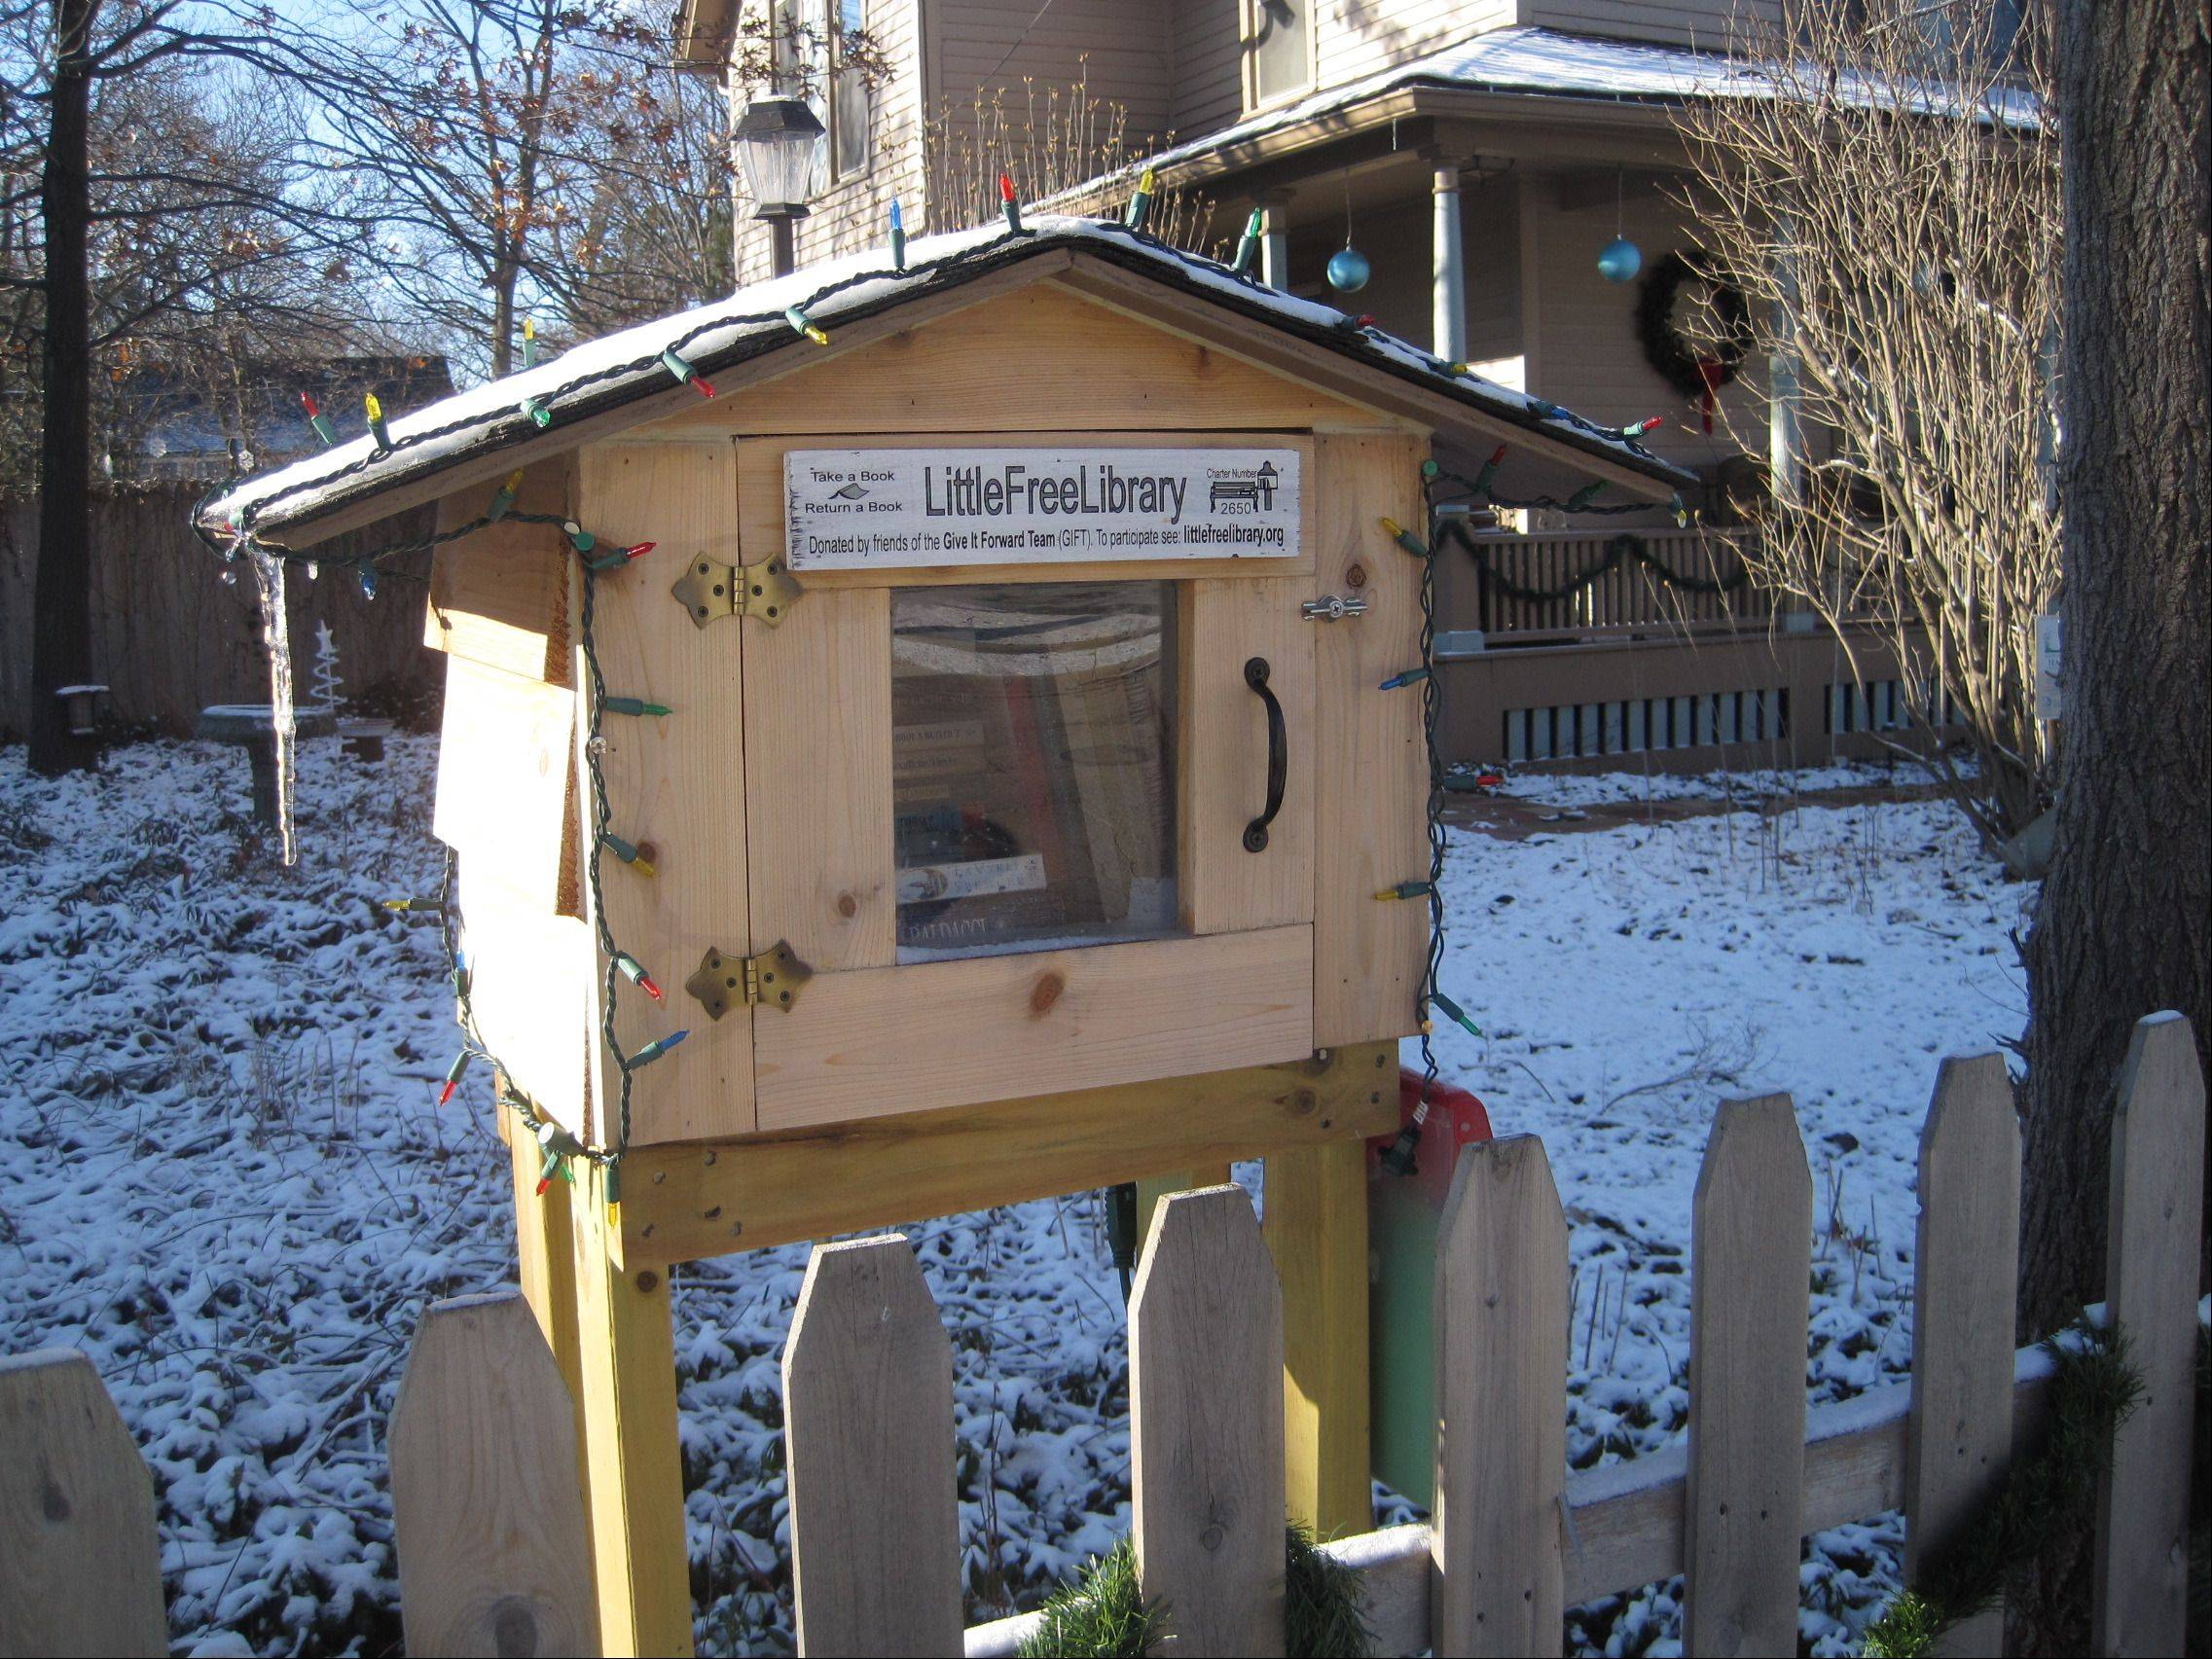 Anne Faulkner and her husband Roy Czach installed a Little Free Library in their front yard at 1010 Center St. in Elgin.